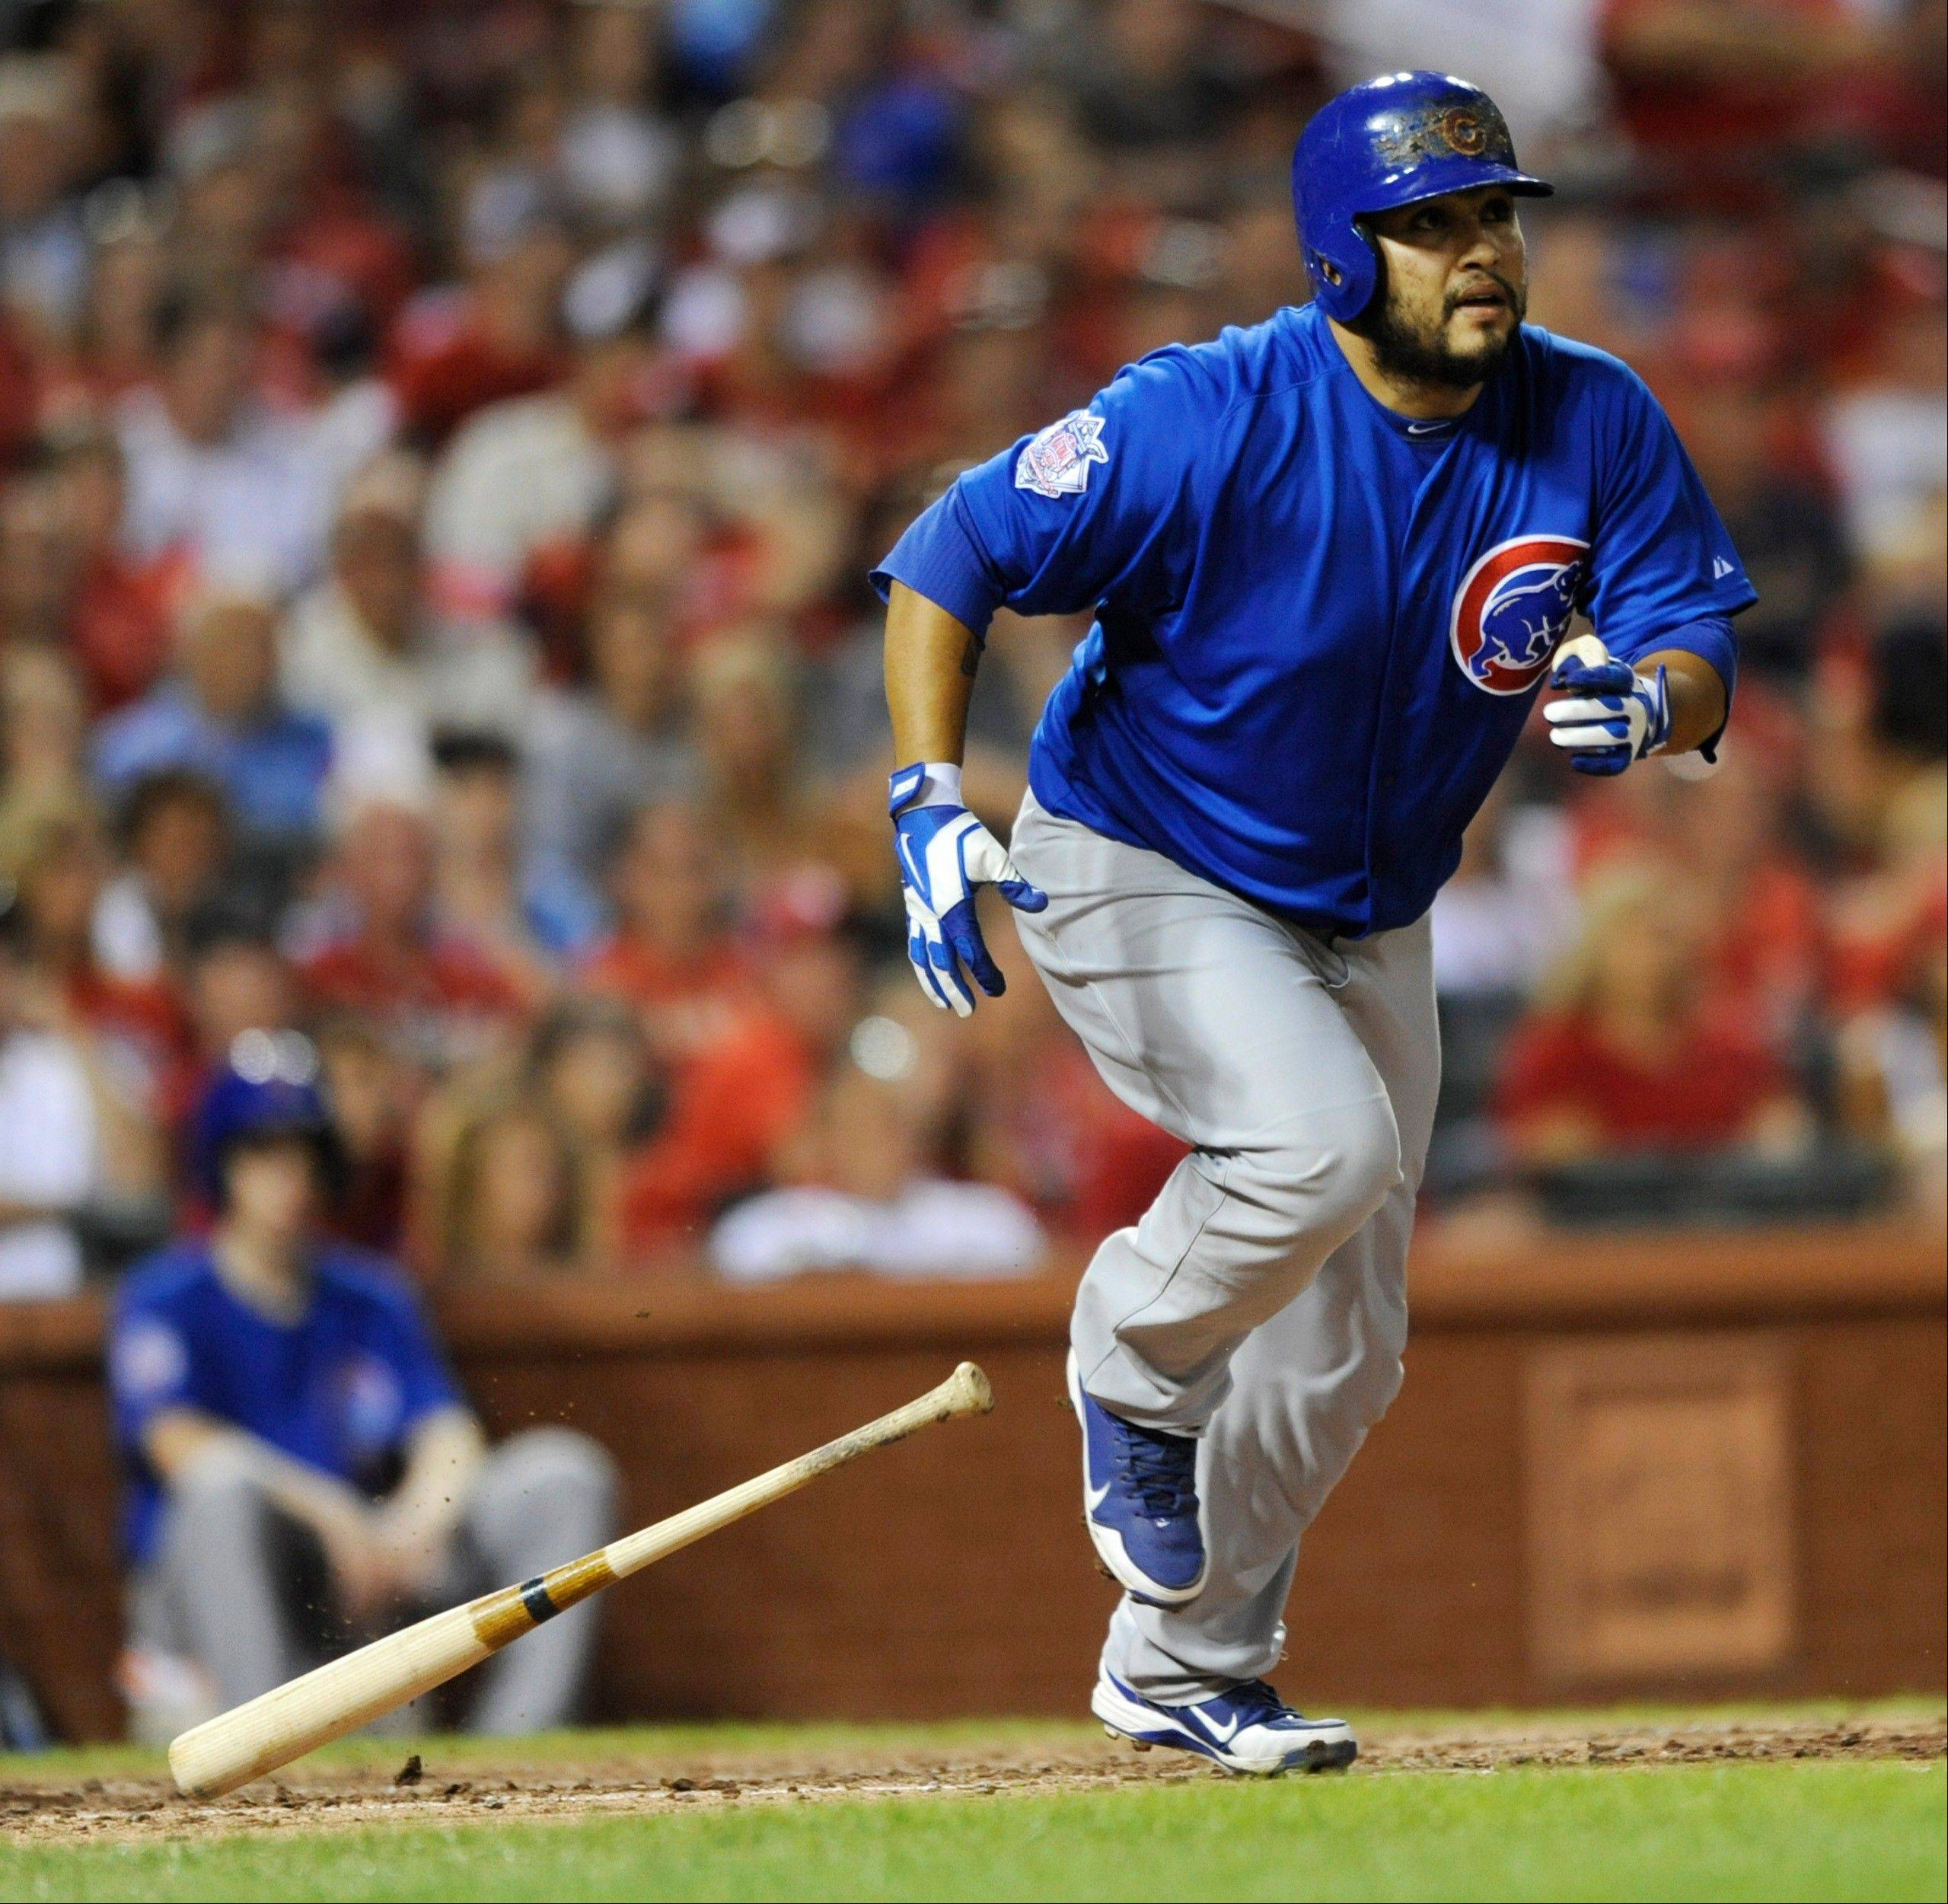 The Cubs' Dioner Navarro watches his RBI double against the St. Louis Cardinals during the eighth inning Saturday night at Busch Stadium in St. Louis.